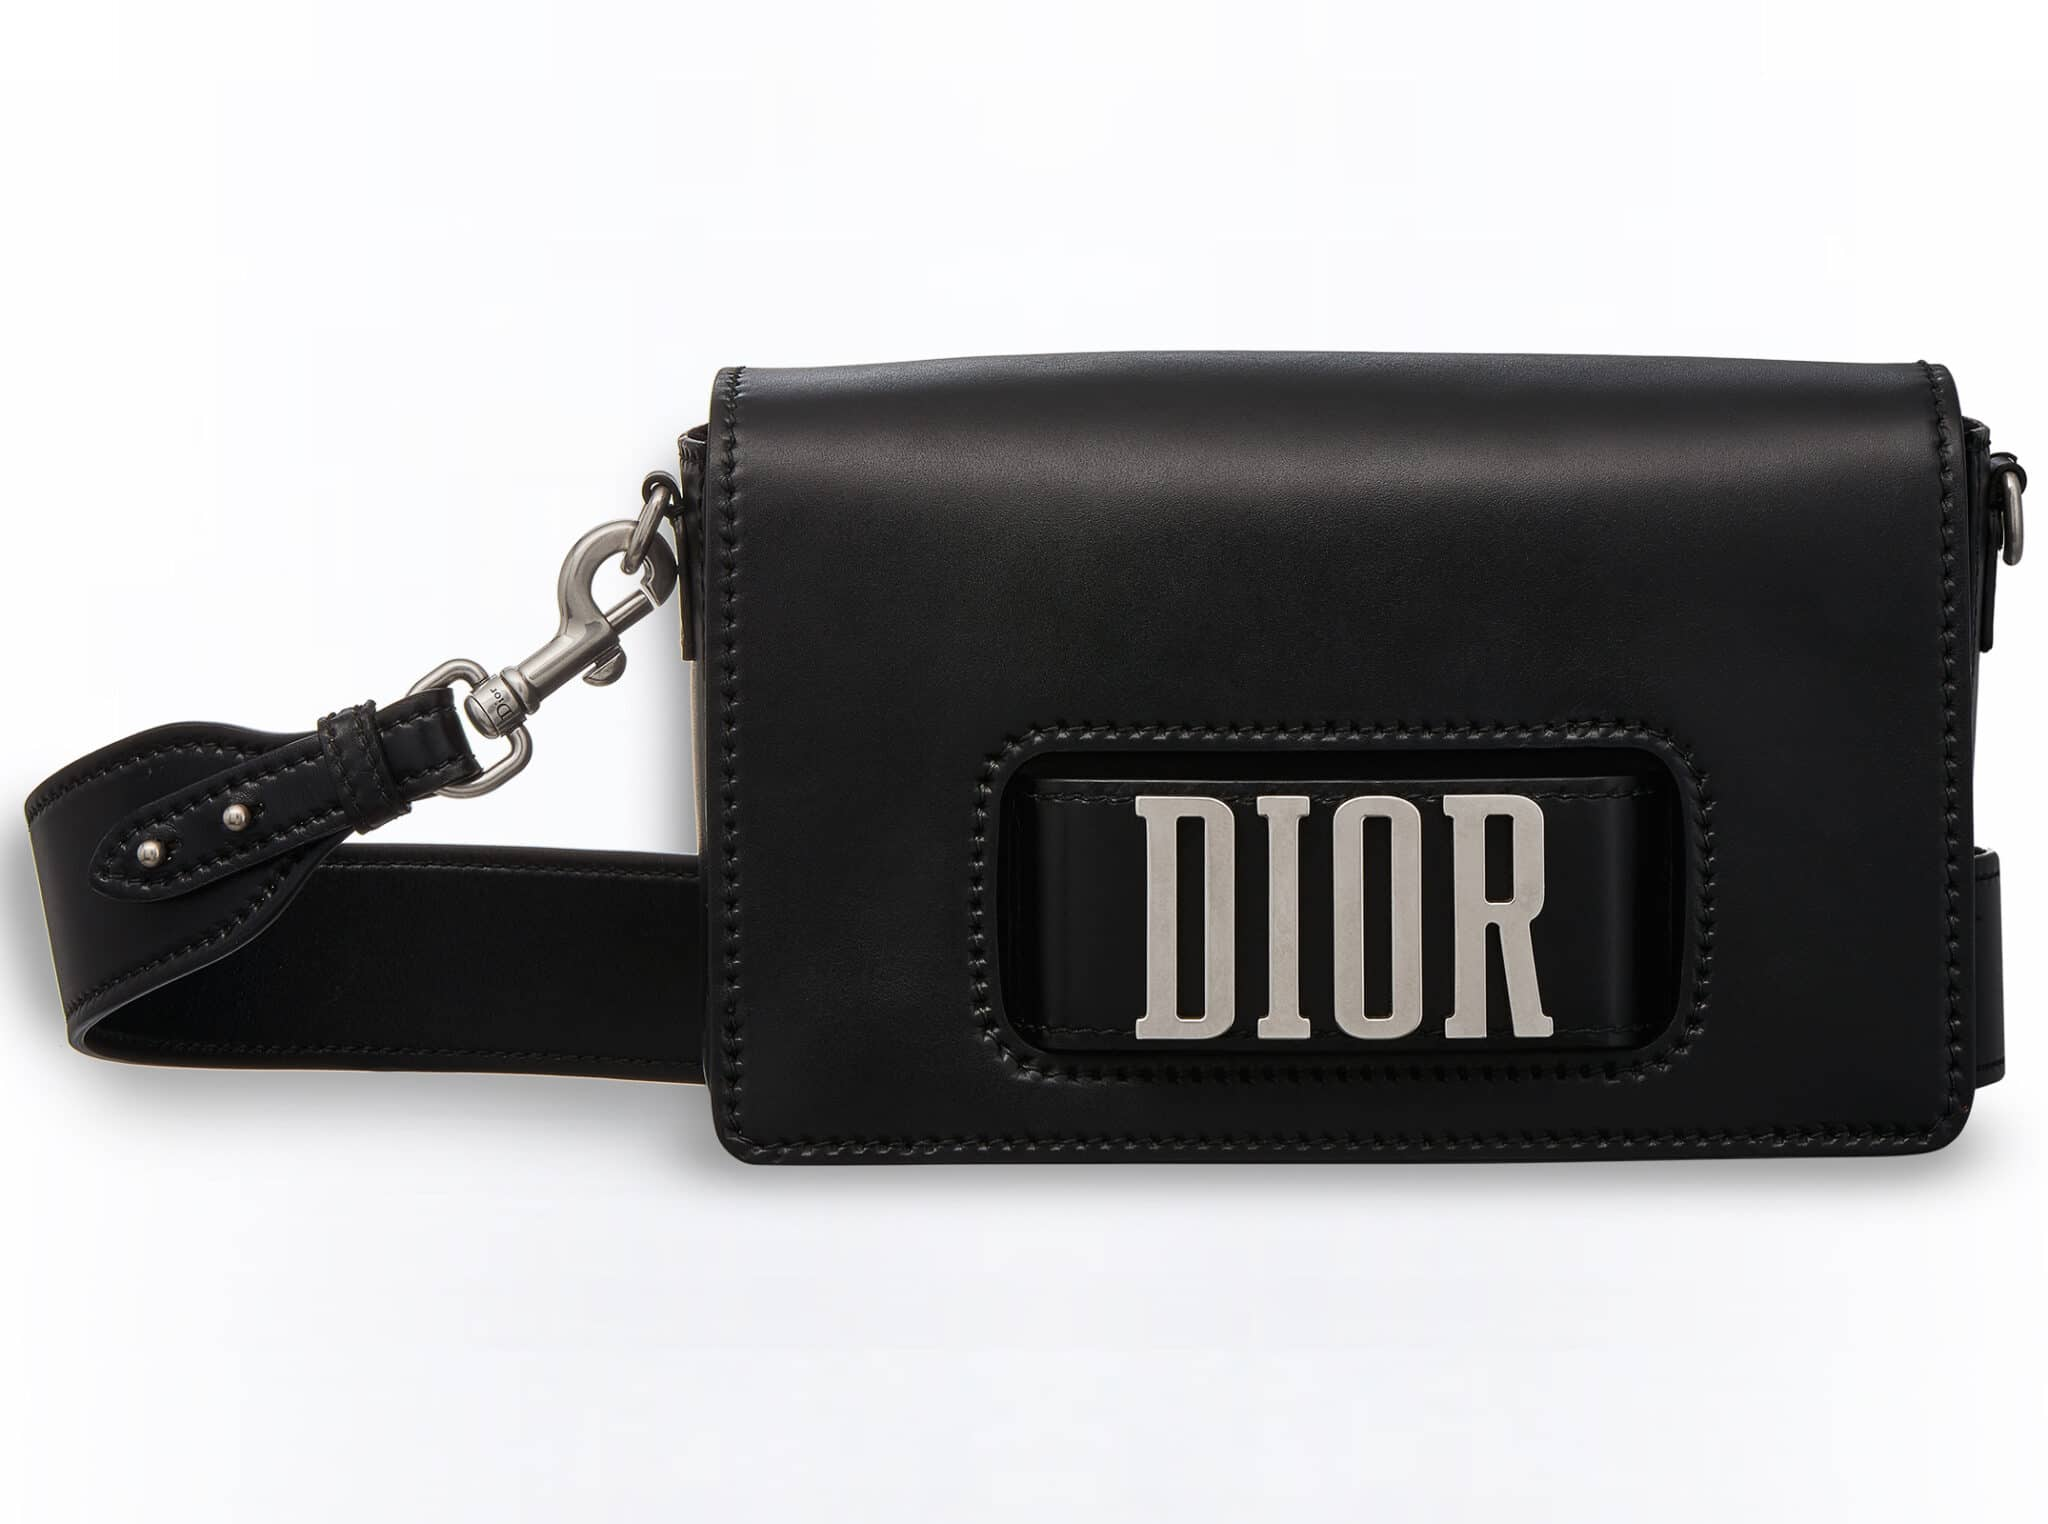 aa9e8a52935 Dior Spring Summer 2017 Bag Collection   Spotted Fashion